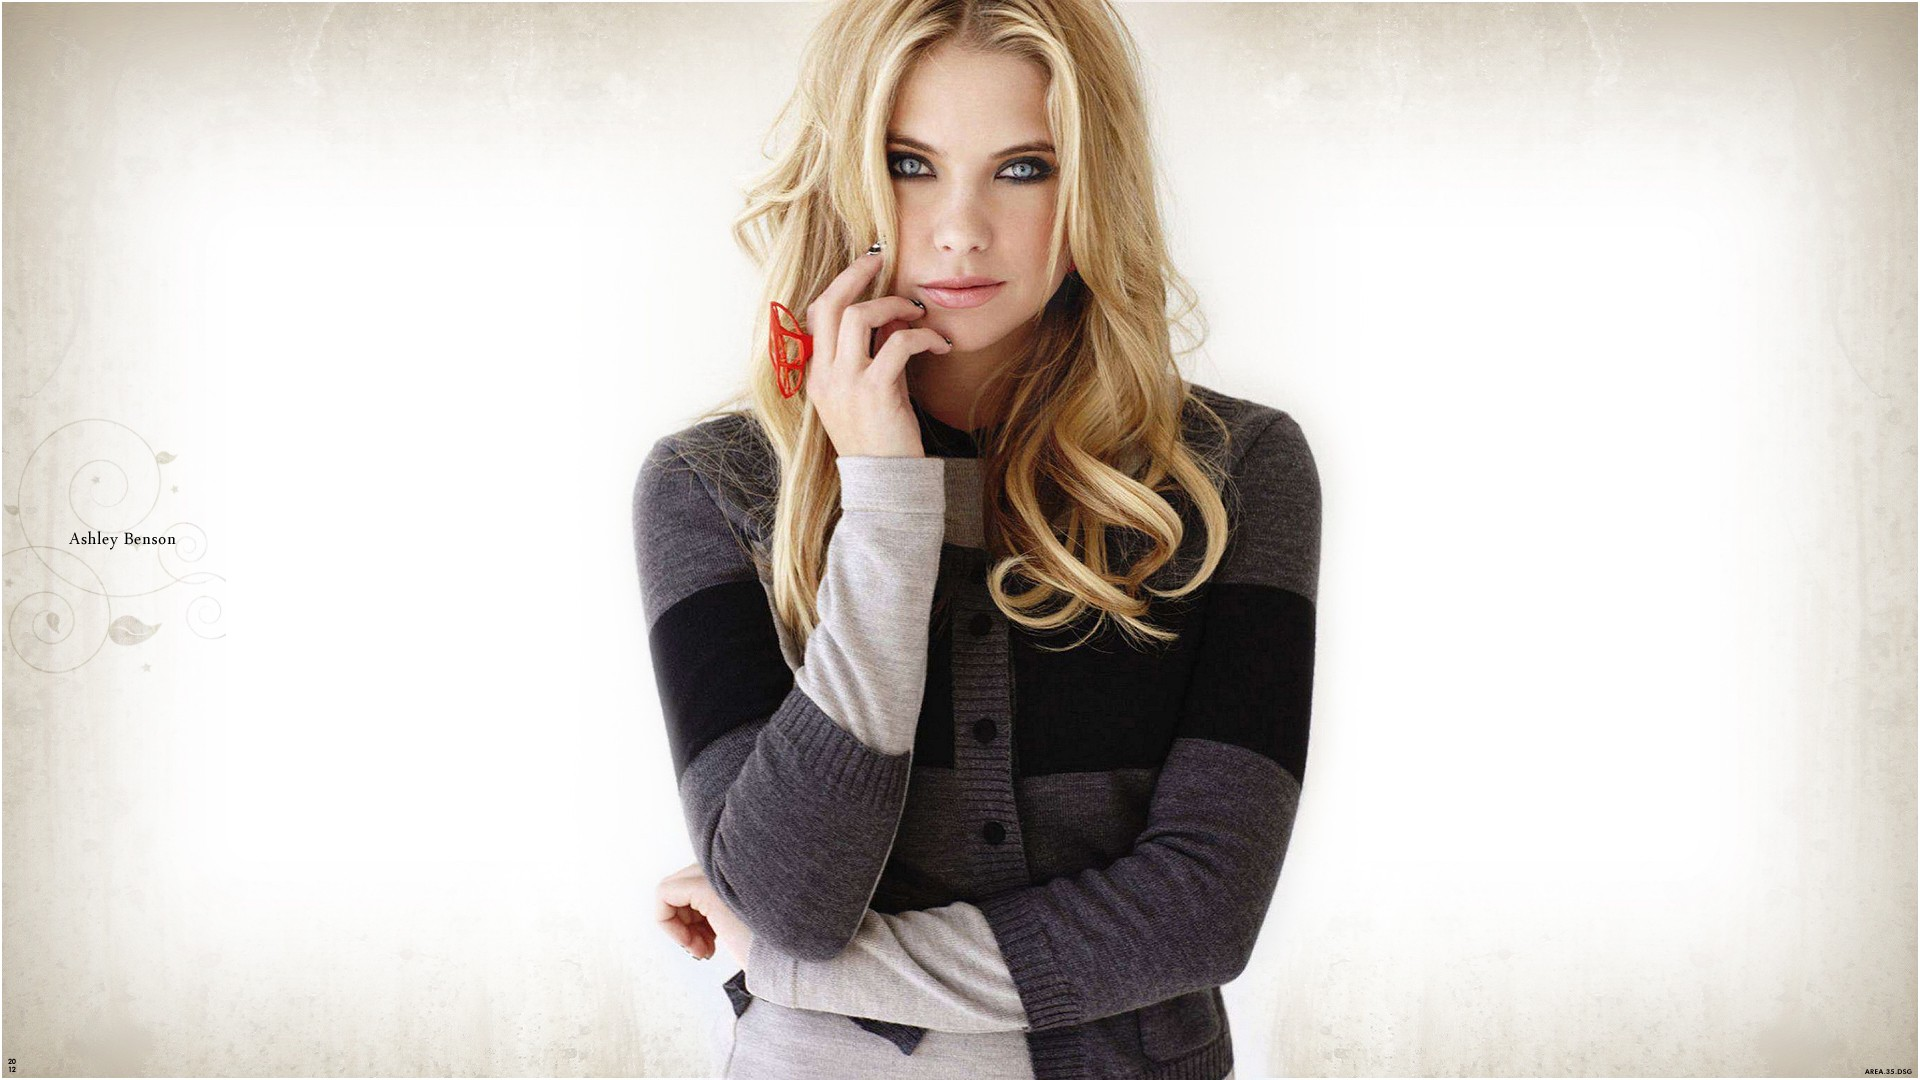 ashley benson wallpapers high quality | download free